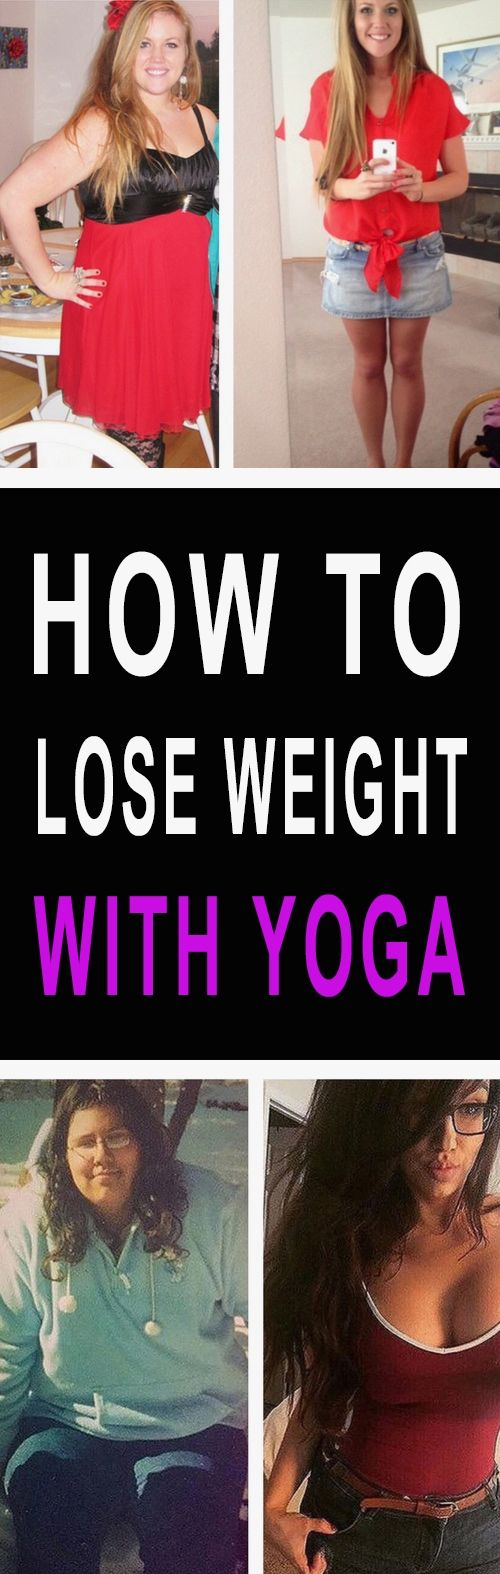 Blast fat away with these poses | Posted By: NewHowToLoseBellyFat.com